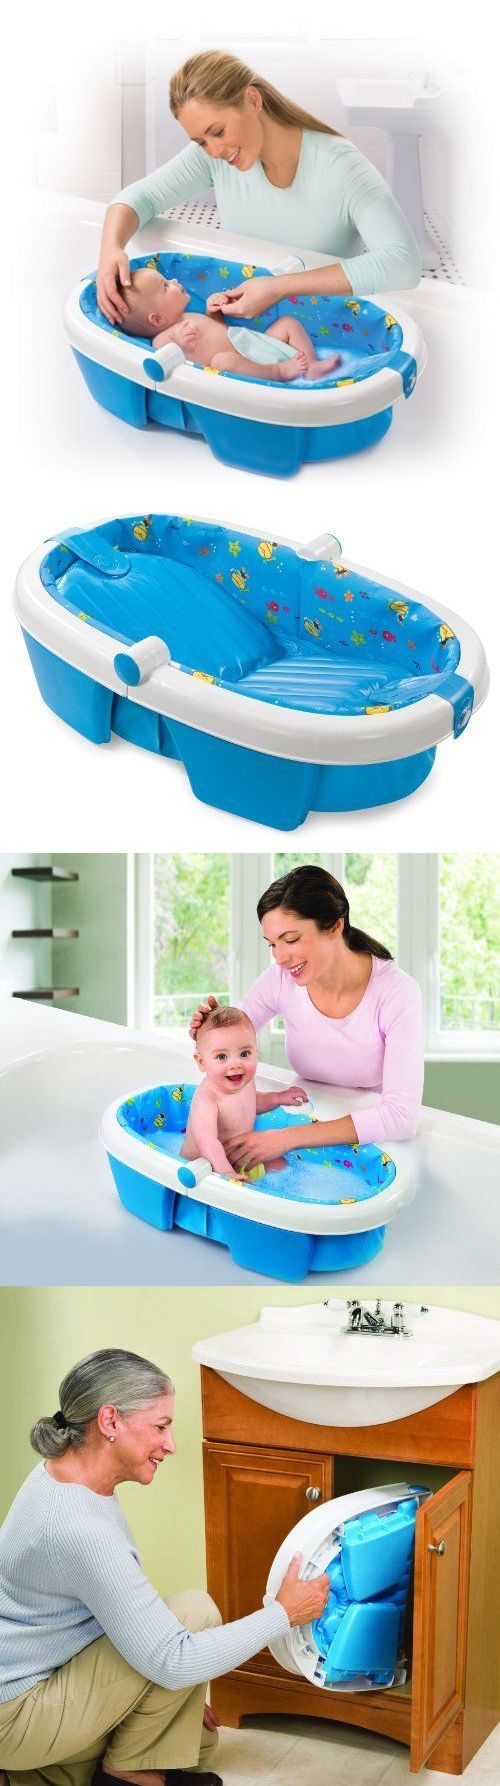 Bath Tub Seats and Rings 162024: Infant Baby Bath Tub Newborn Fold ...